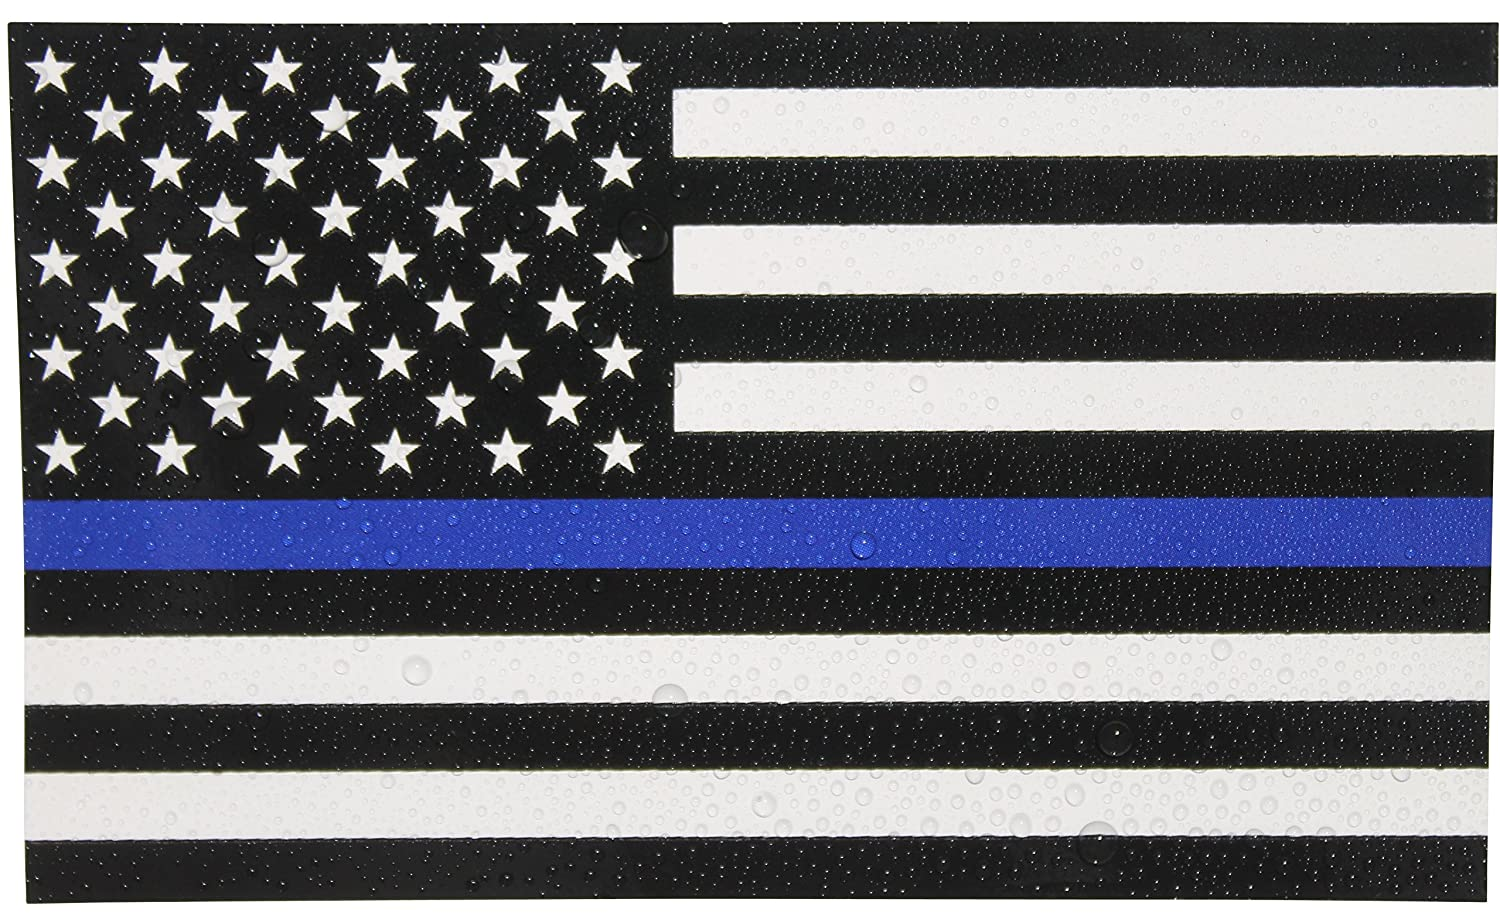 Amazoncom Thin Blue Line Flag Decals X In Black White And - Boat decalsamerican flag boat decals usa flag boat graphics xtreme digital